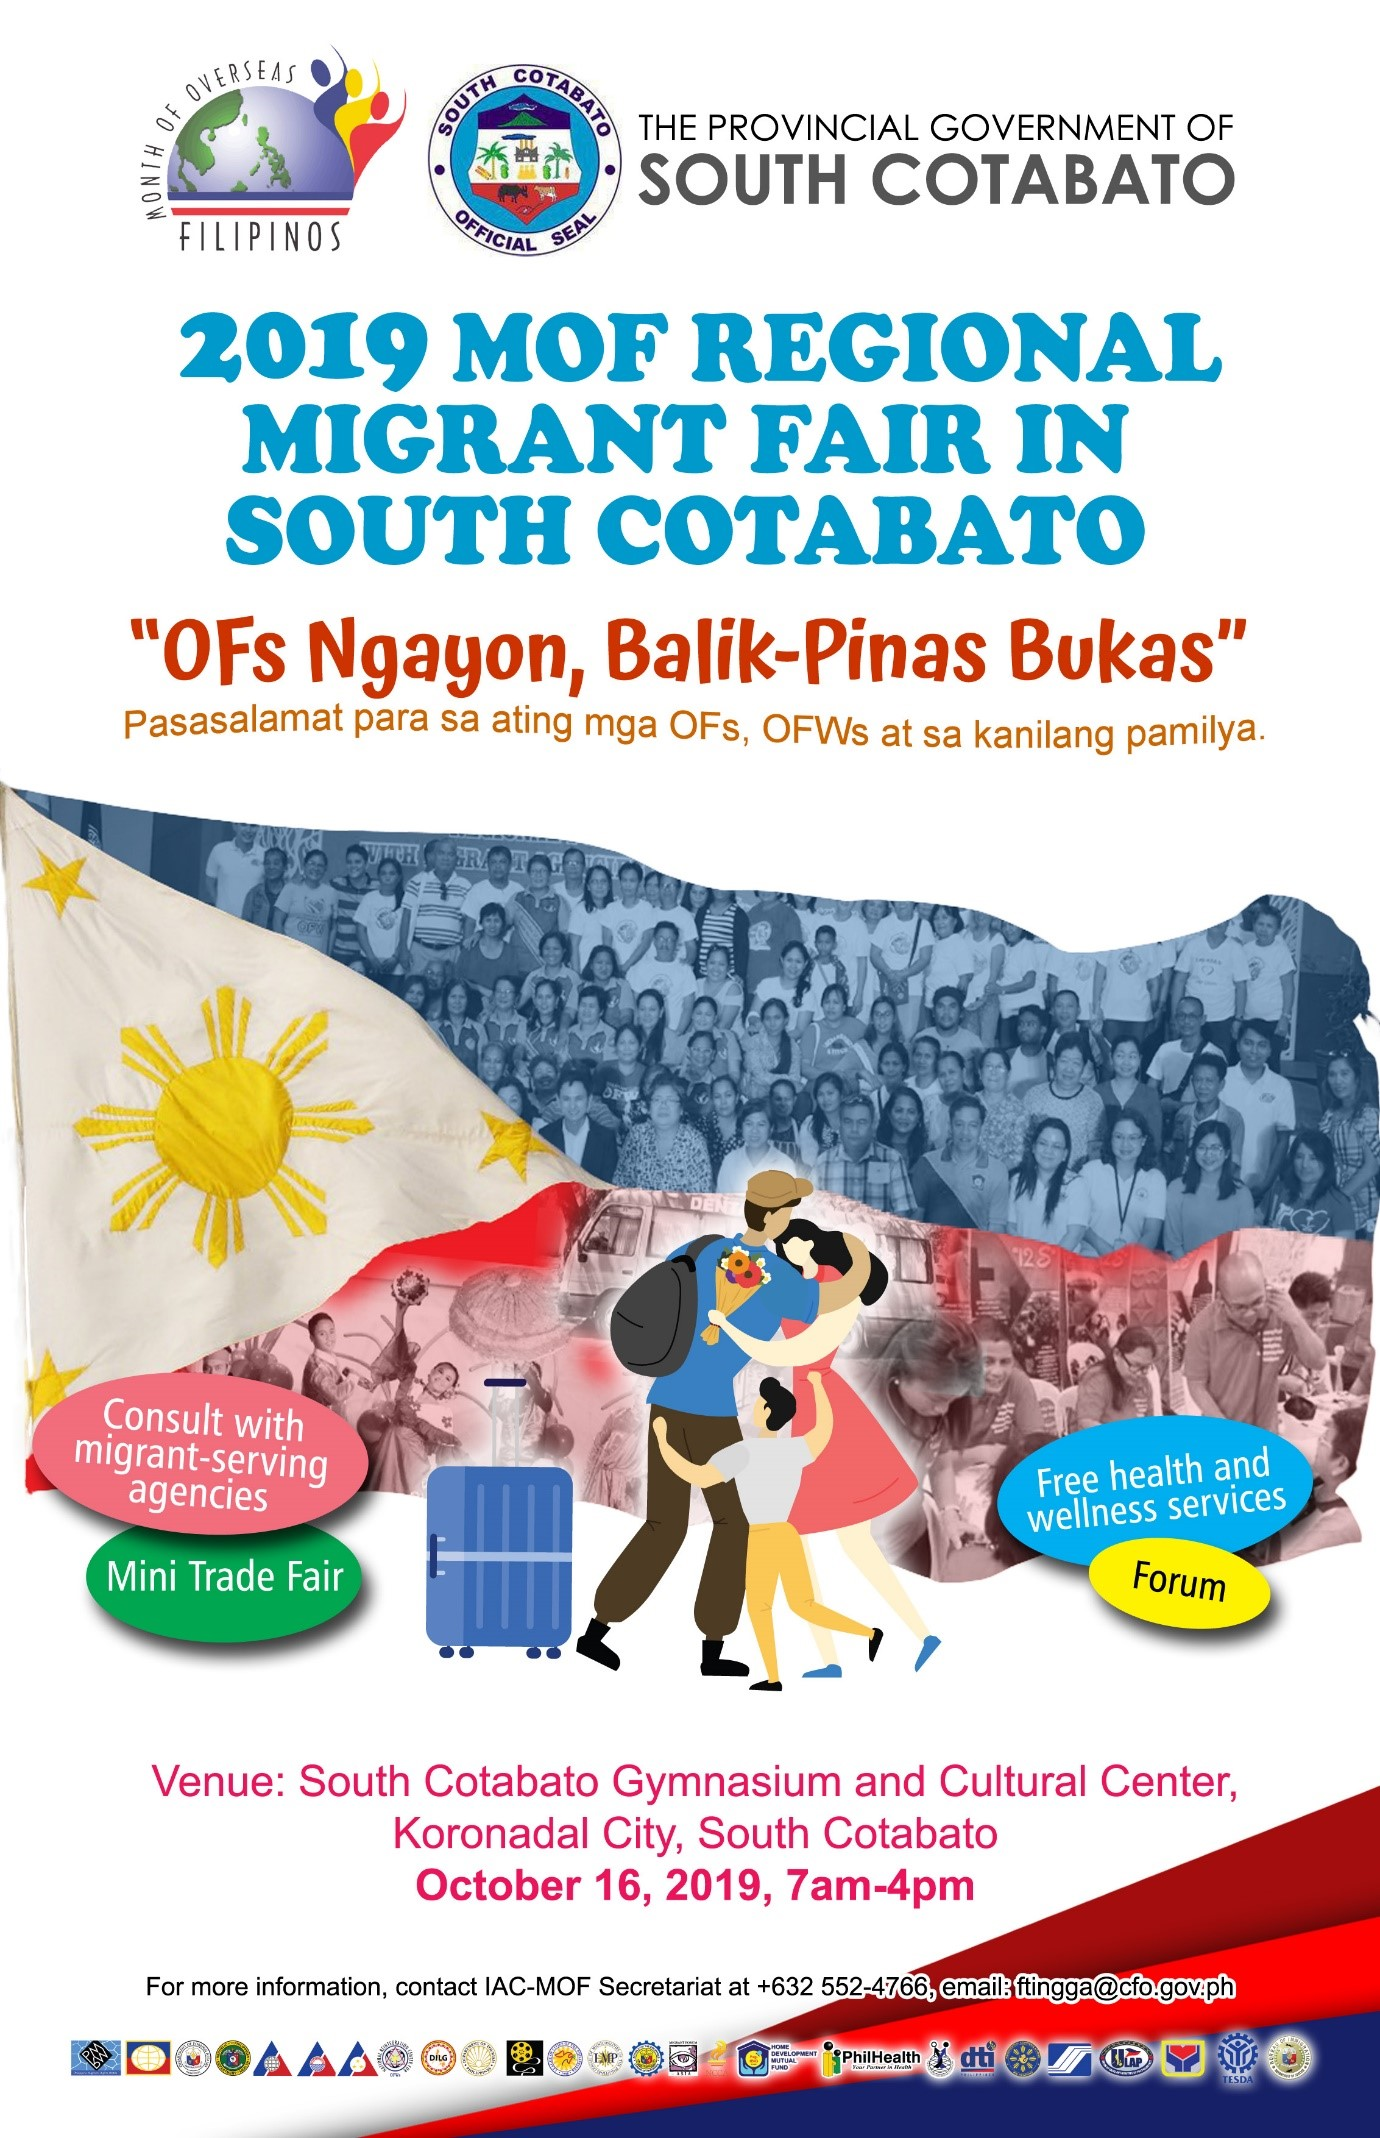 2019 MOF Regional Migrant Fair set in the Land of Dreamweavers